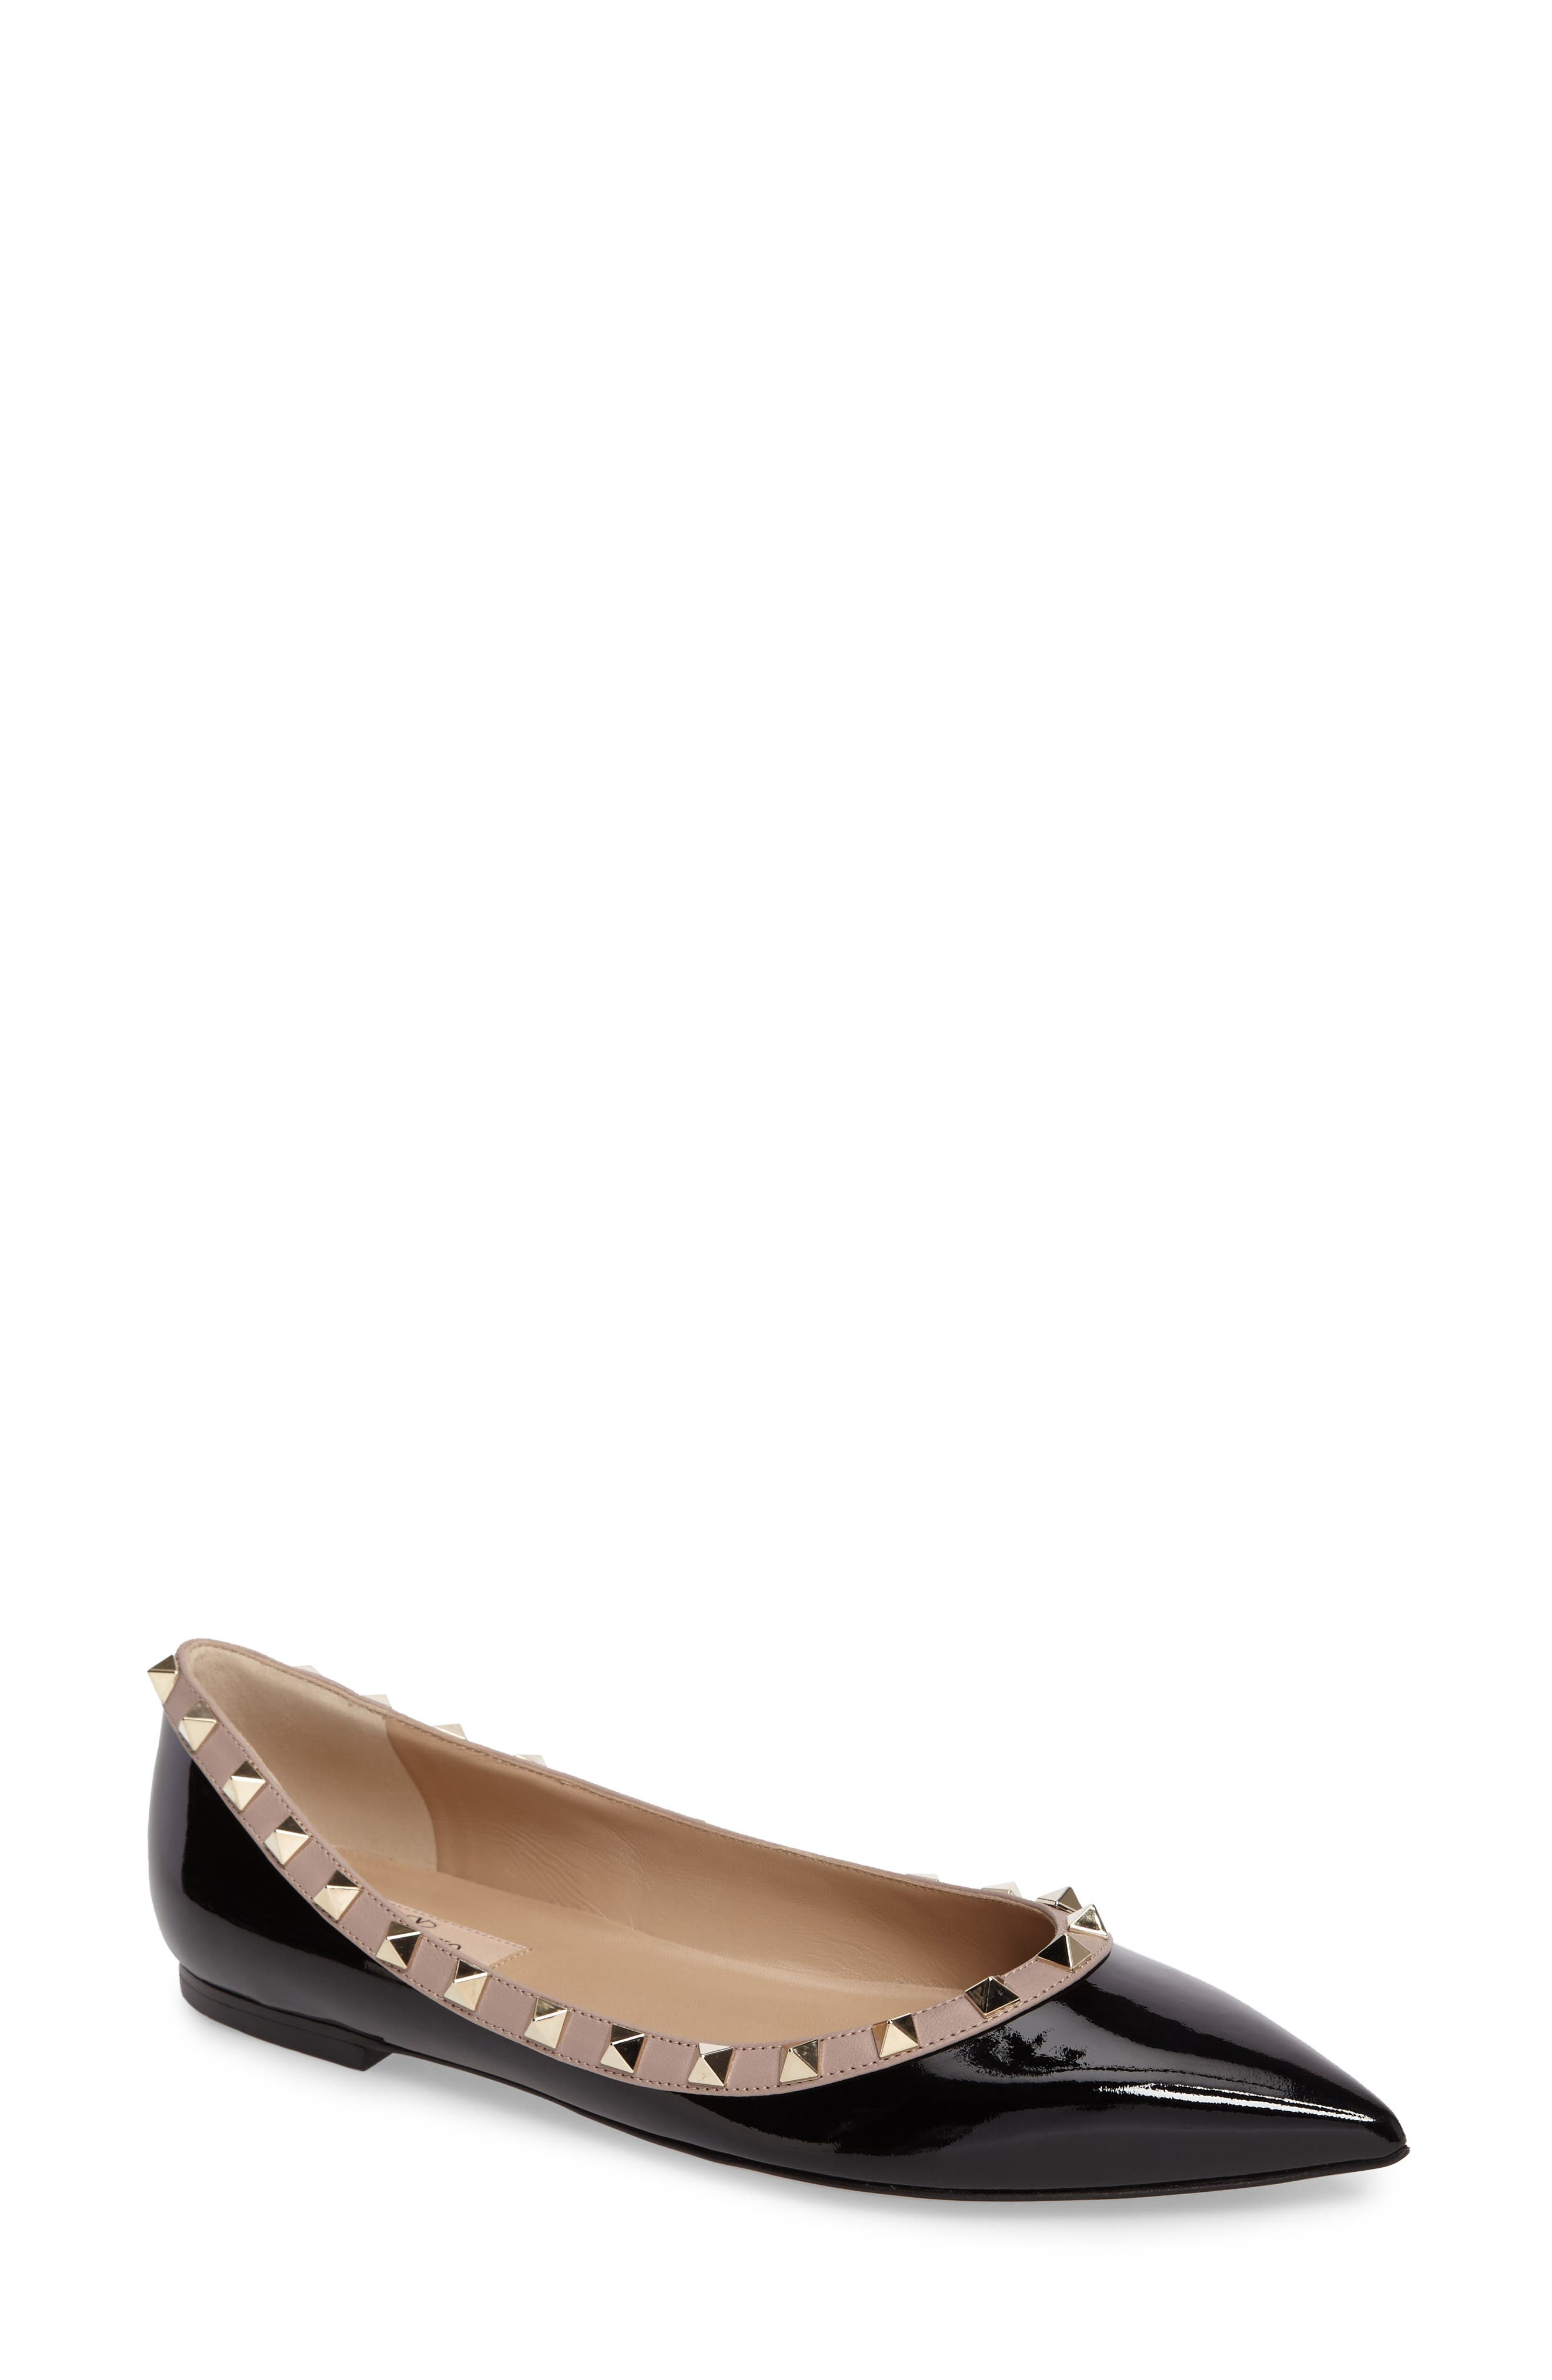 Rockstud Ballerina Flat,                         Main,                         color, BLACK/ BLUSH